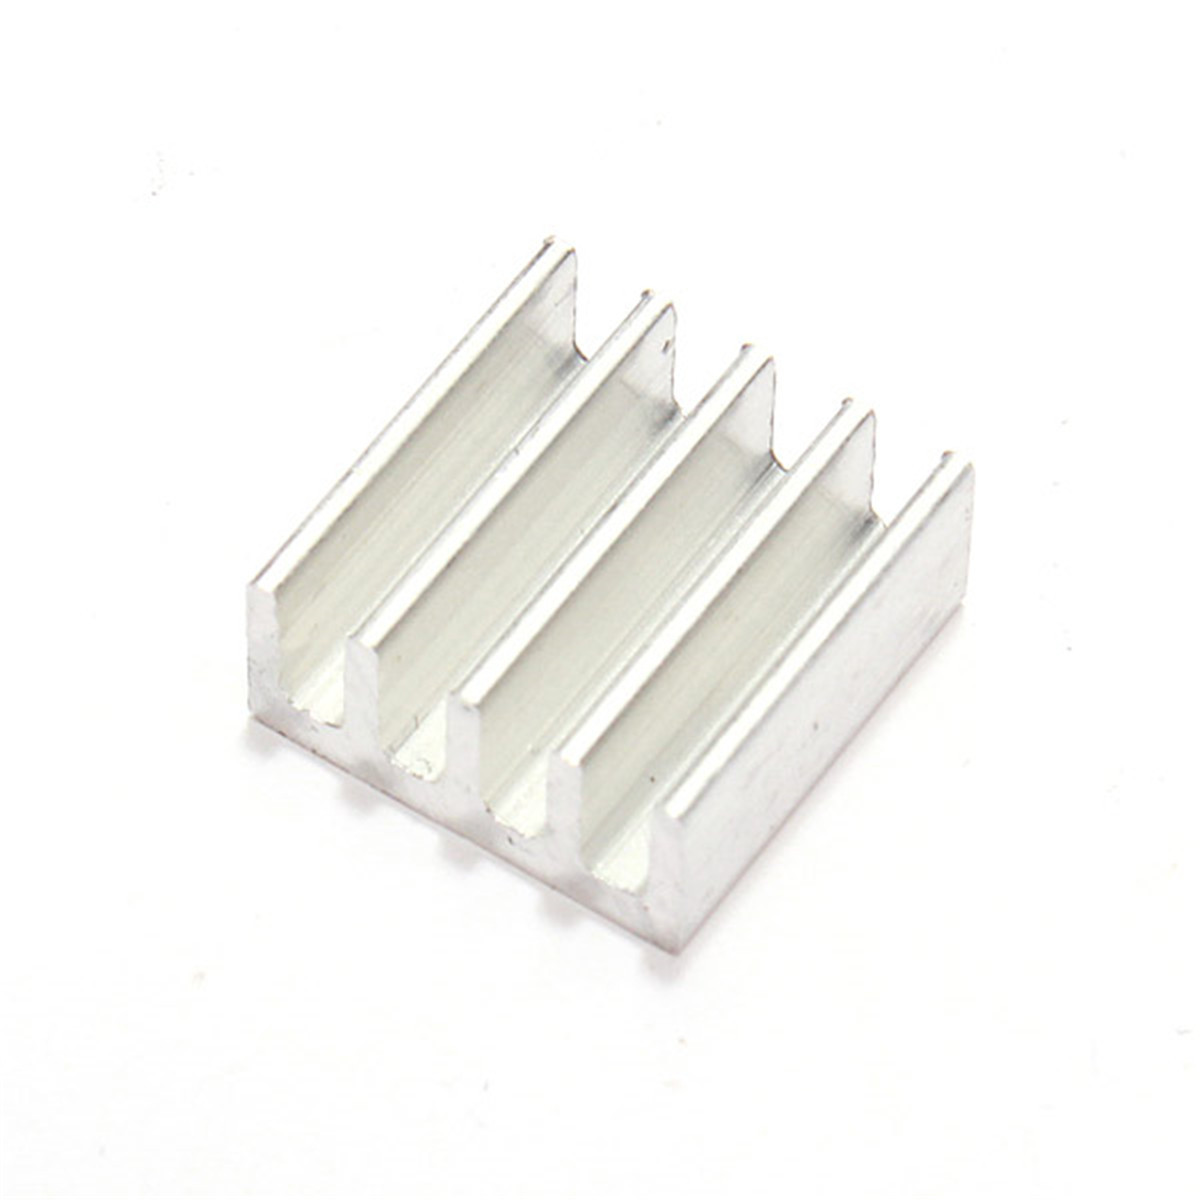 Aluminum 9*9*5mm Heat Sink With Adhesive For A4988 Stepper Motor Driver Module 3D Printer